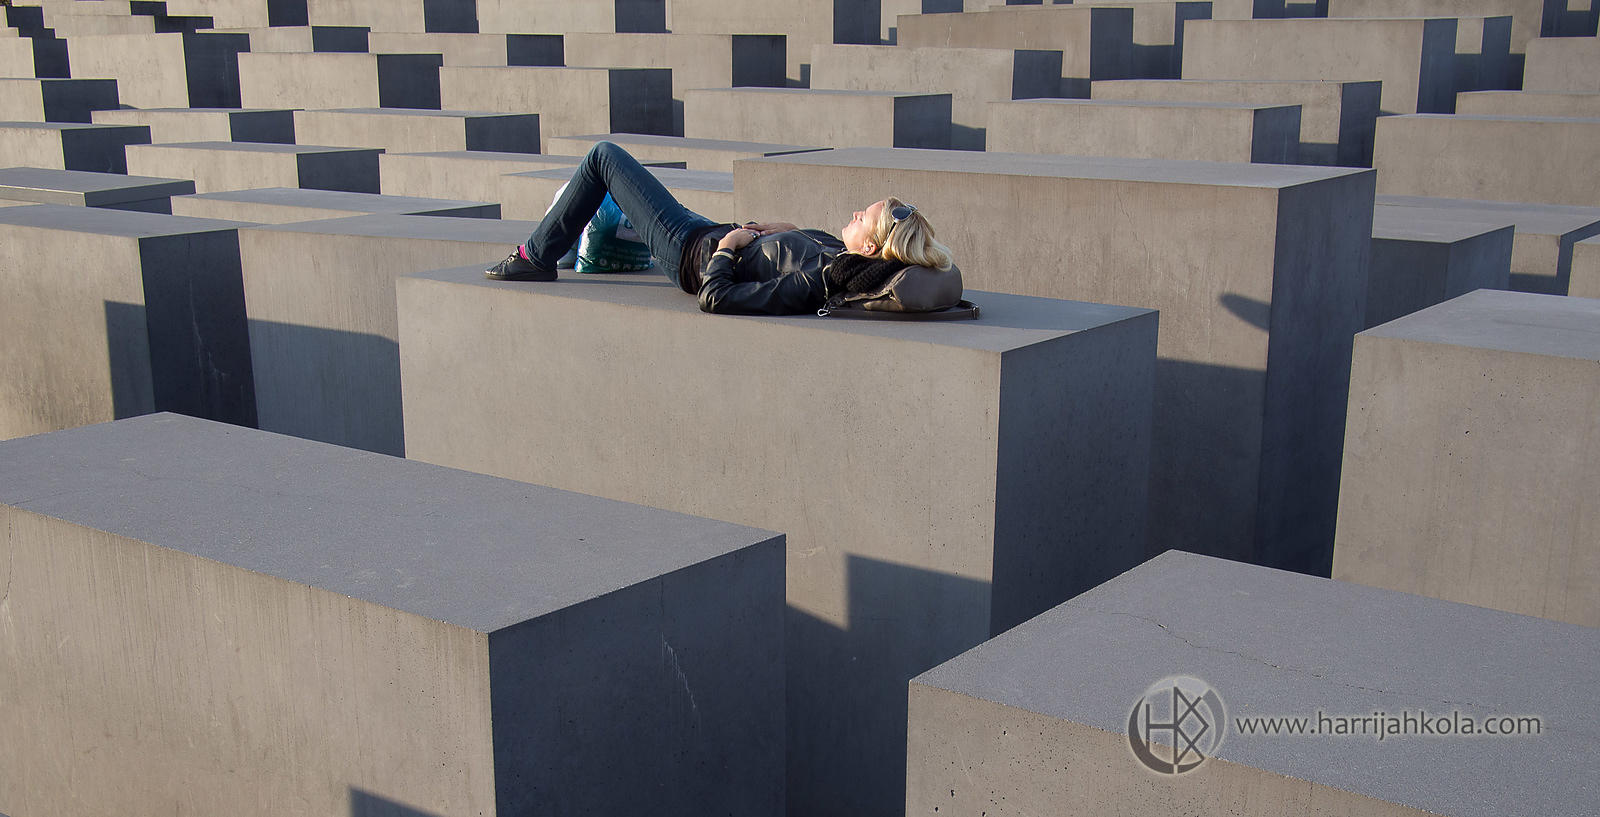 Germany - Berlin (Holocaust Memorial - Resting)